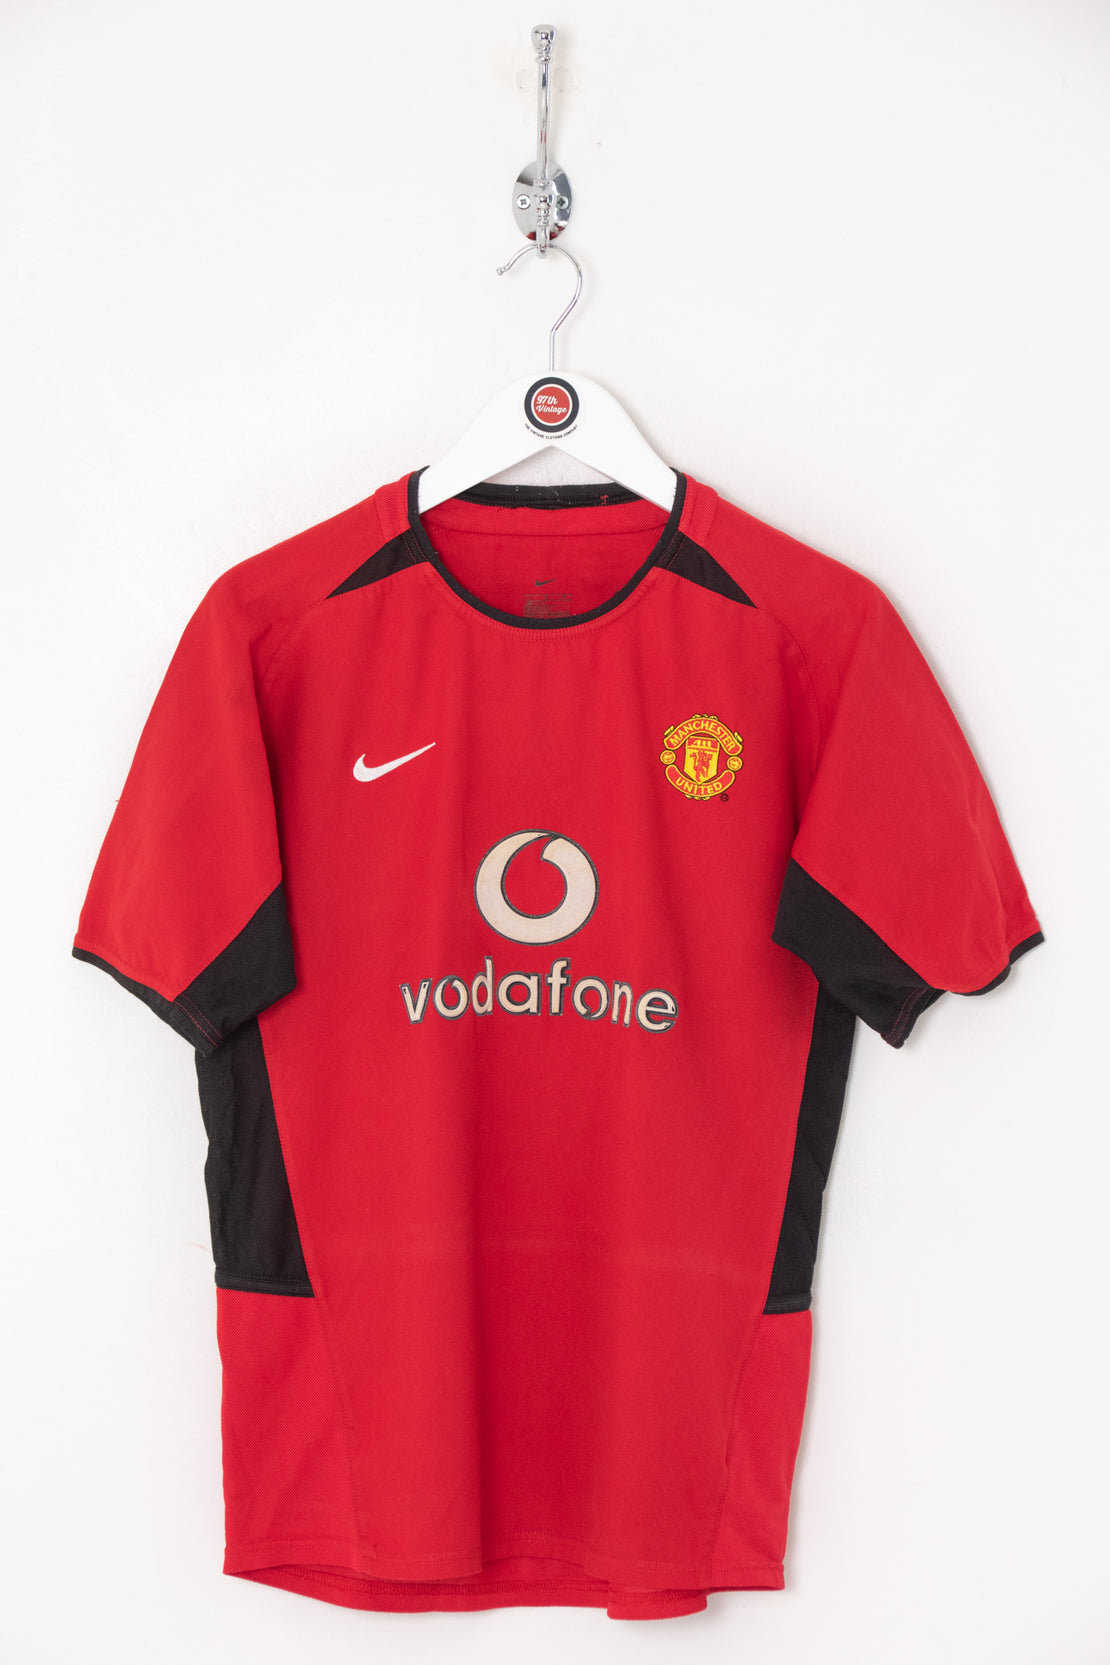 2002 Kids Manchester United Football Shirt (Age 12)